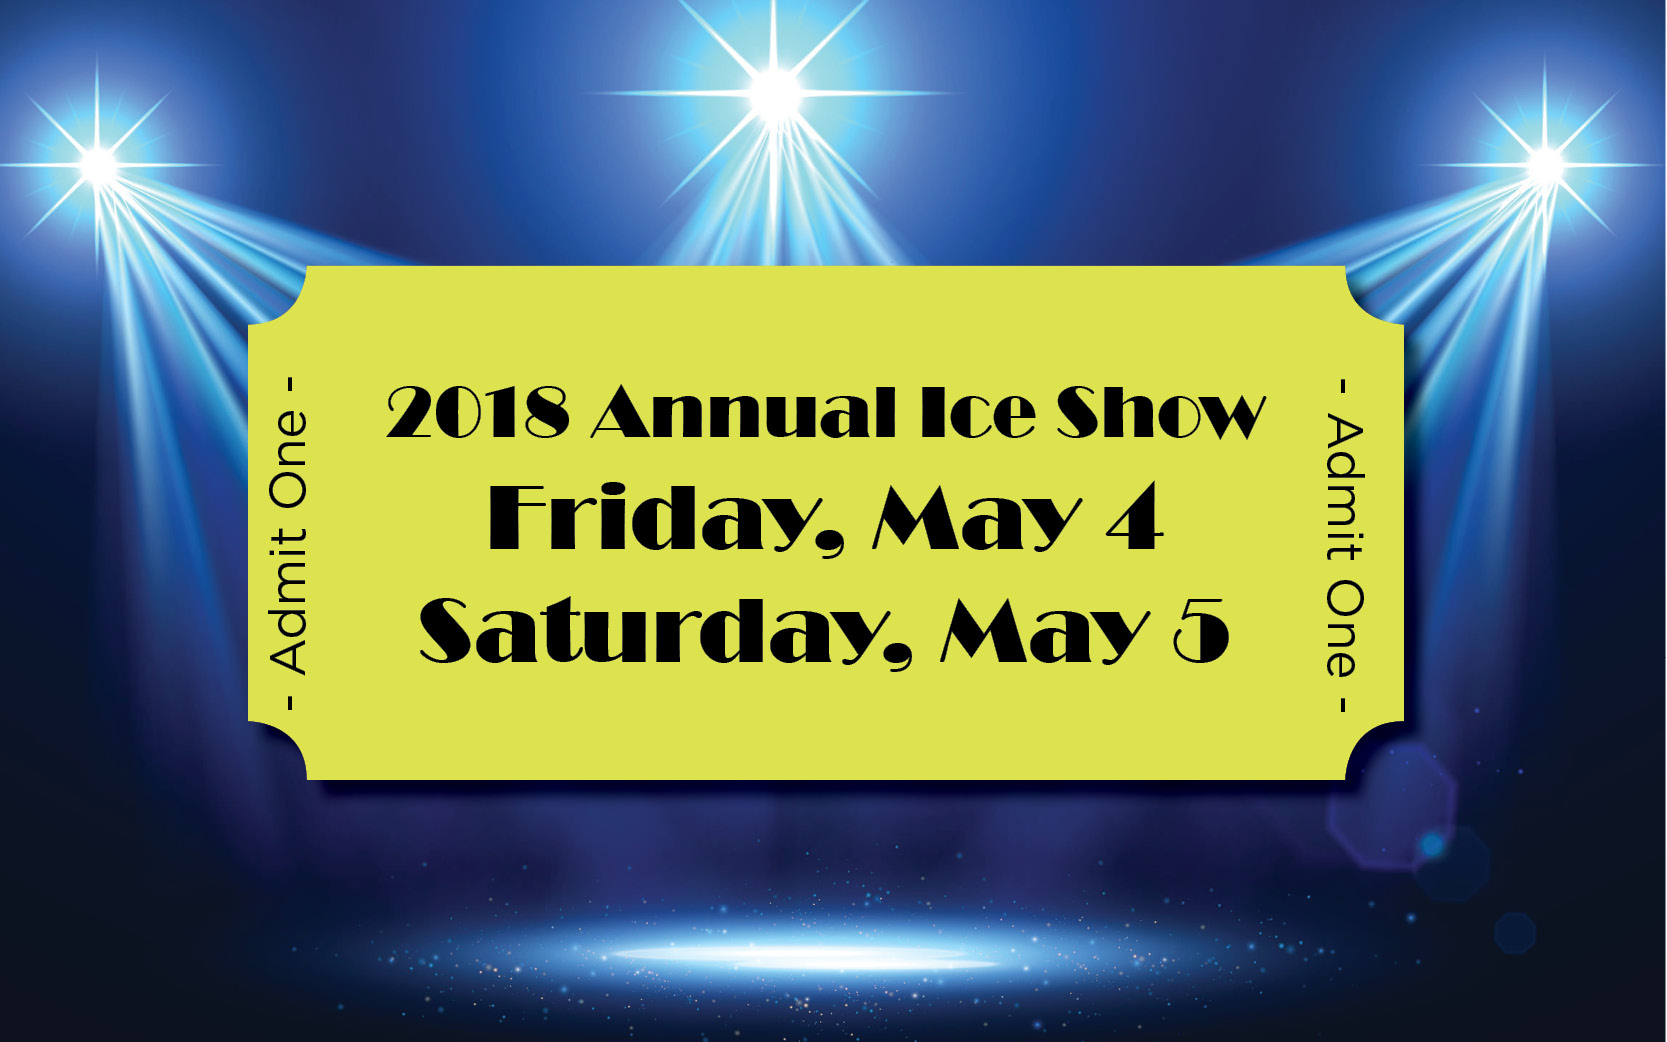 2018 annual ice show. Friday May 4, Saturday May 6